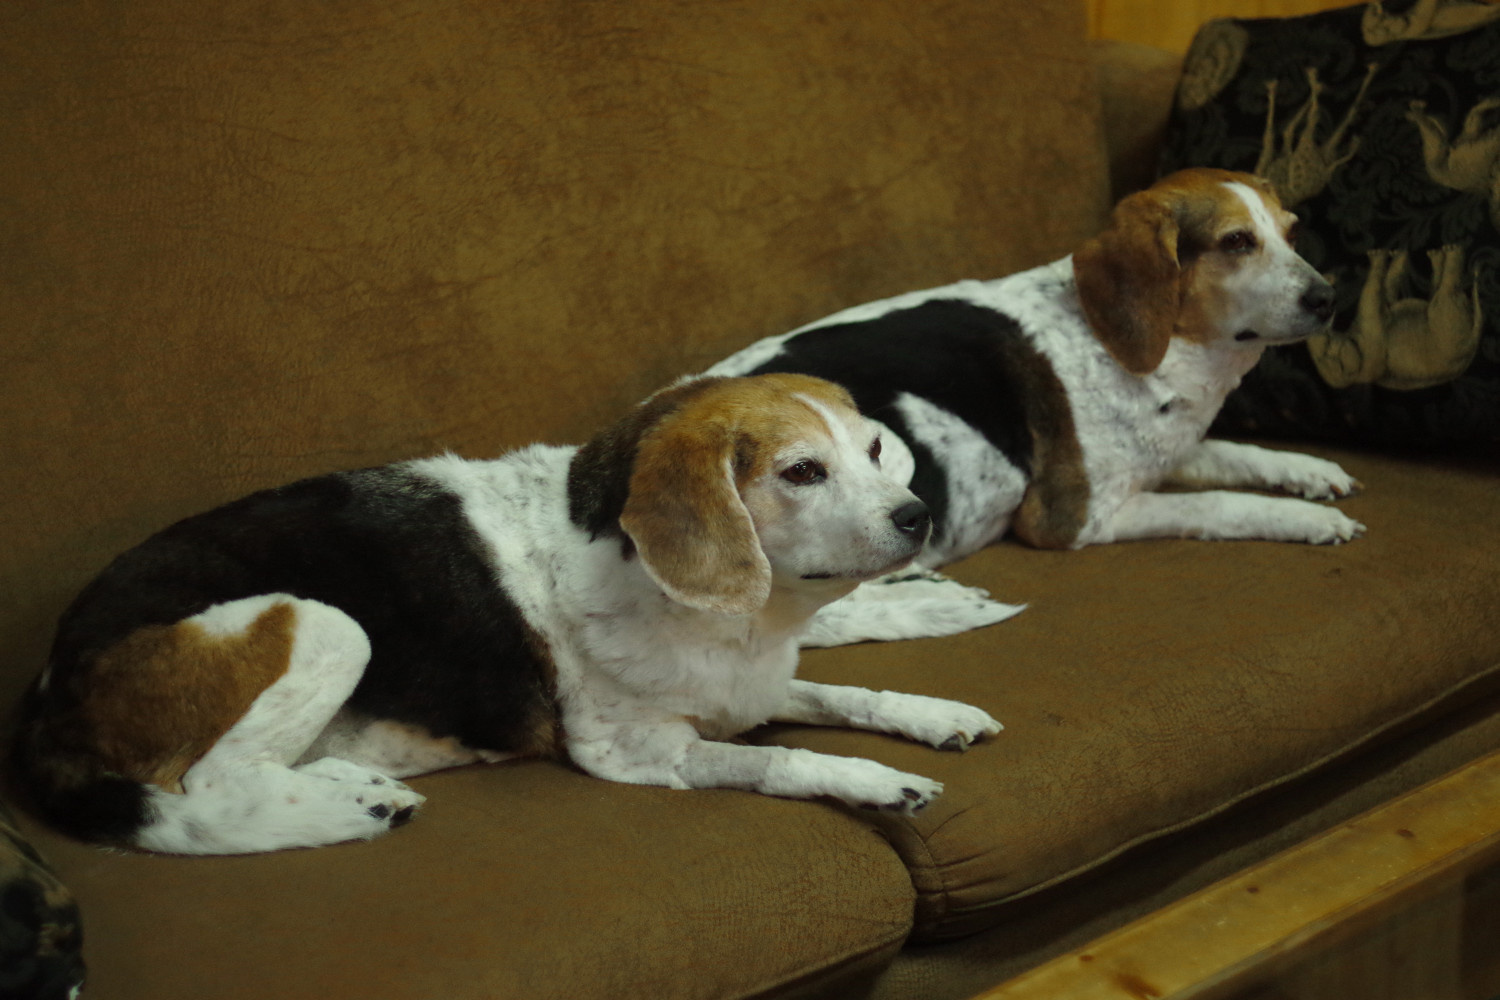 Two beagles done for the same family